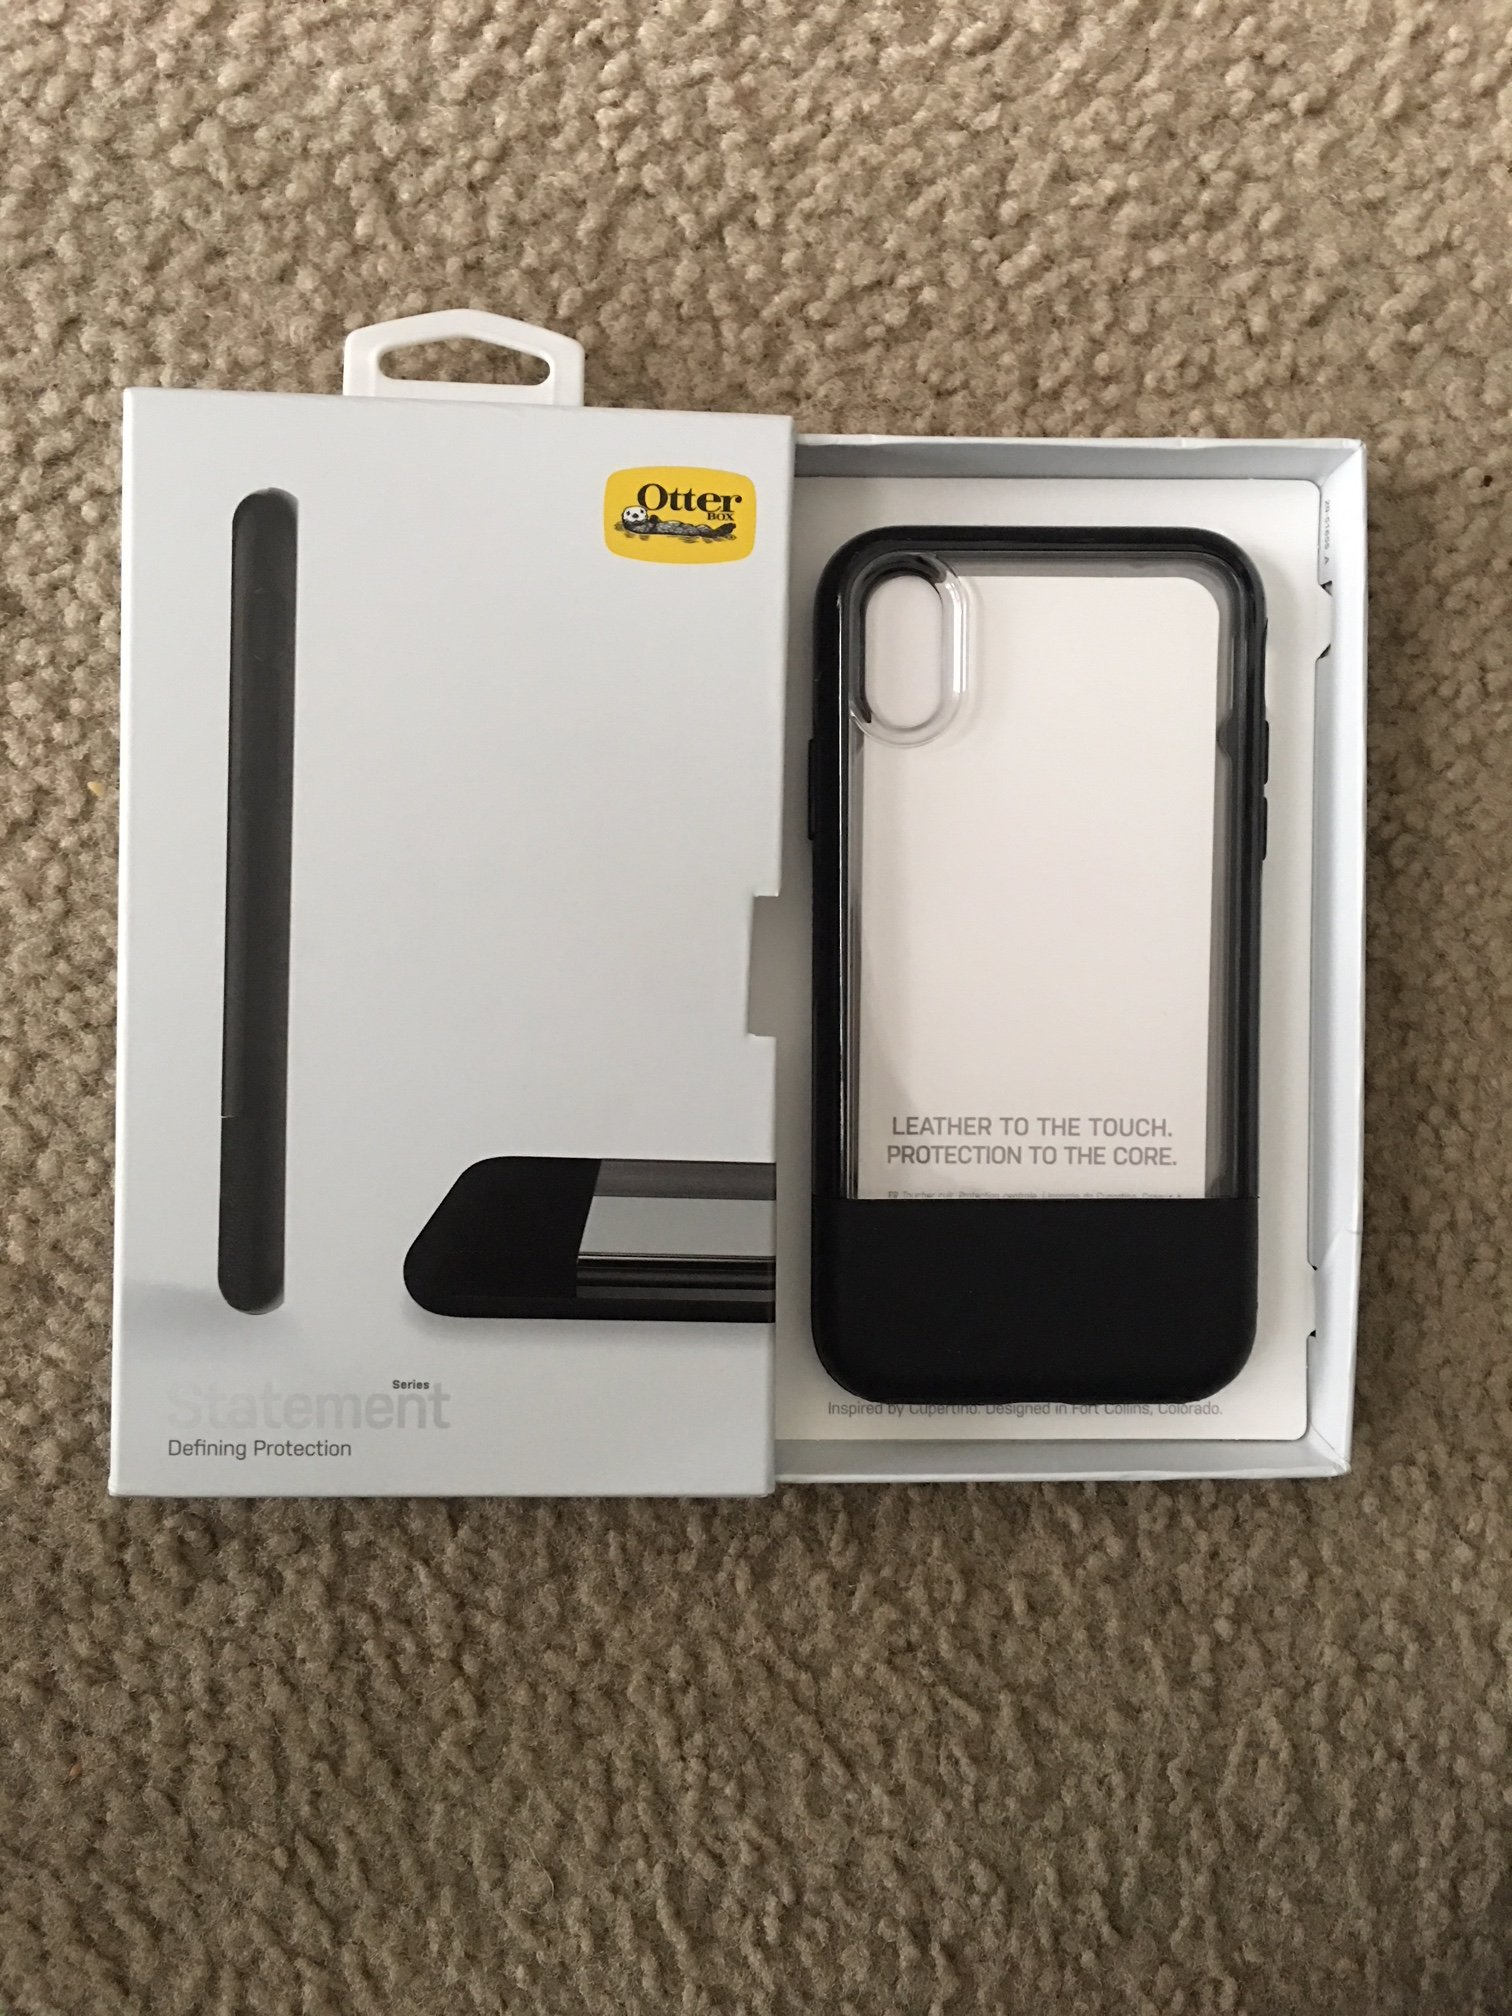 purchase cheap 509a1 c2a2b Otterbox Statement for X? Worth it? | MacRumors Forums